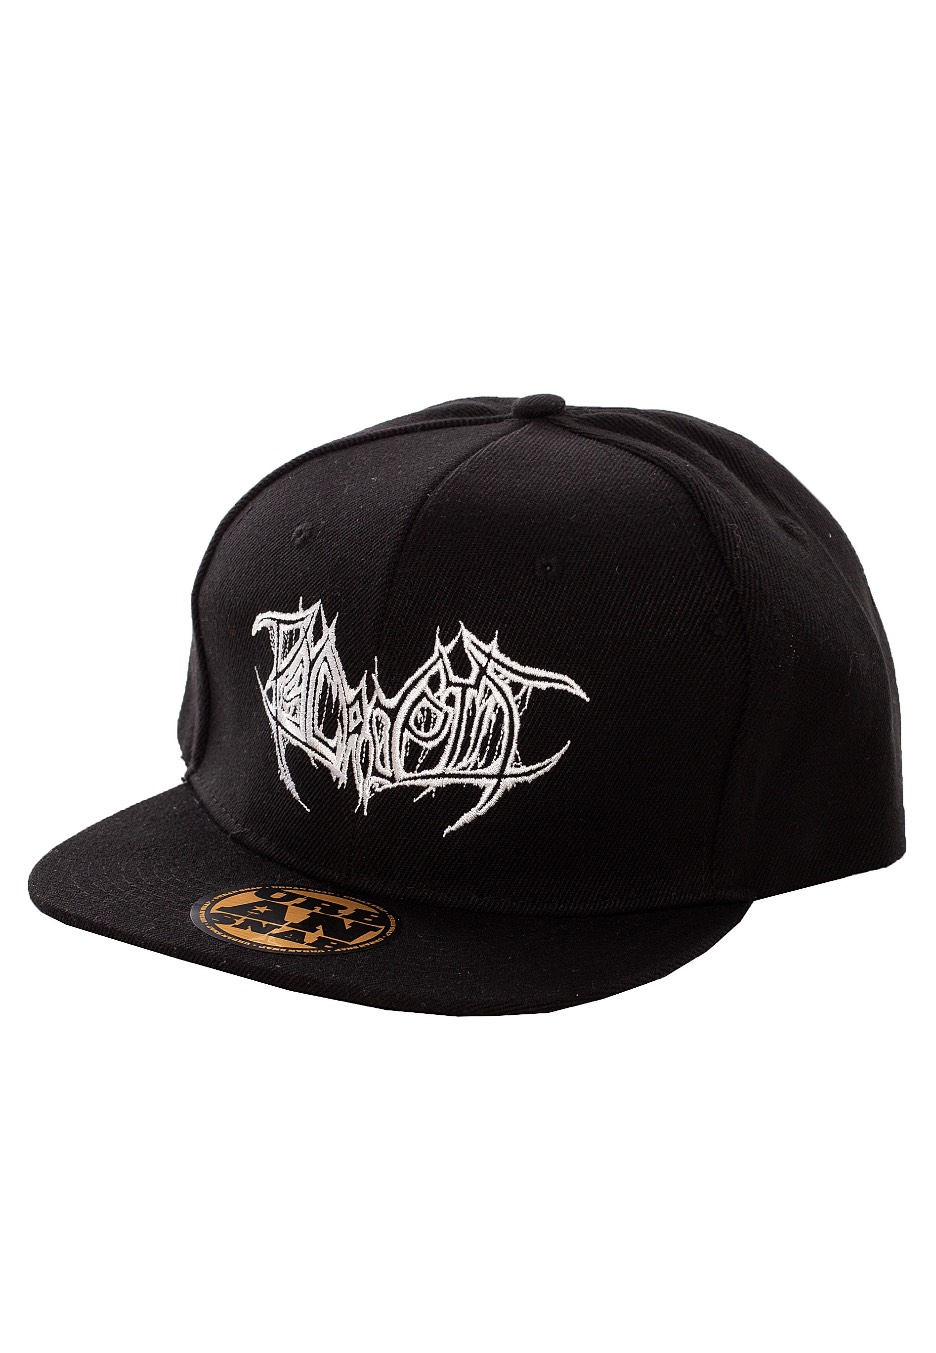 Accessories - Impericon.com Worldwide 0e84d3b3629f